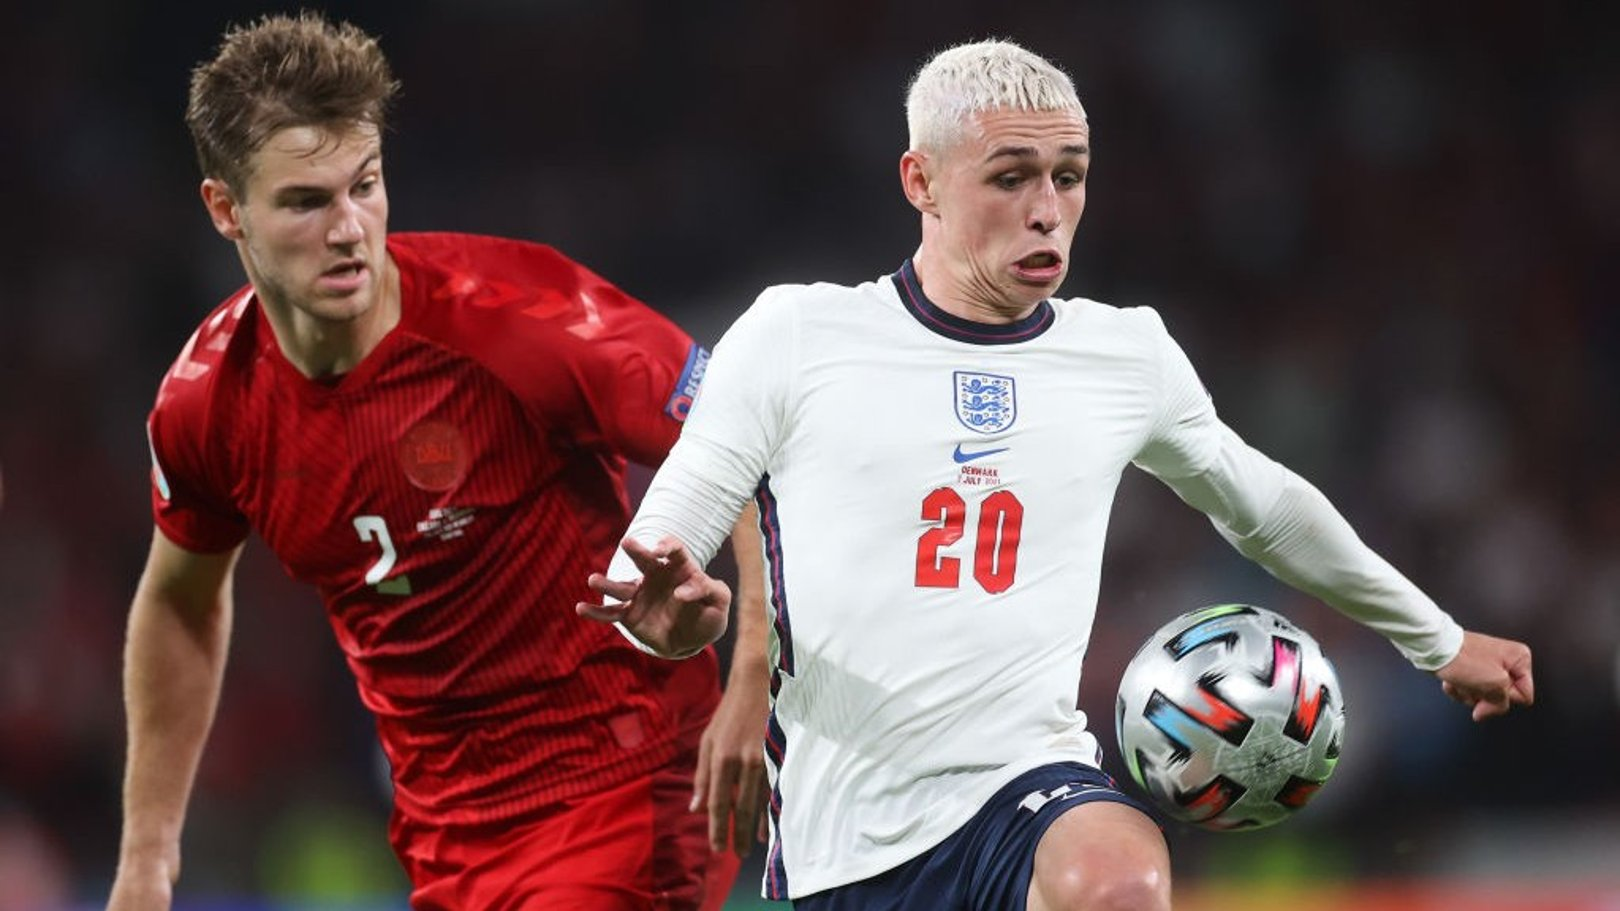 Foden: England aiming to play the game, not the occasion